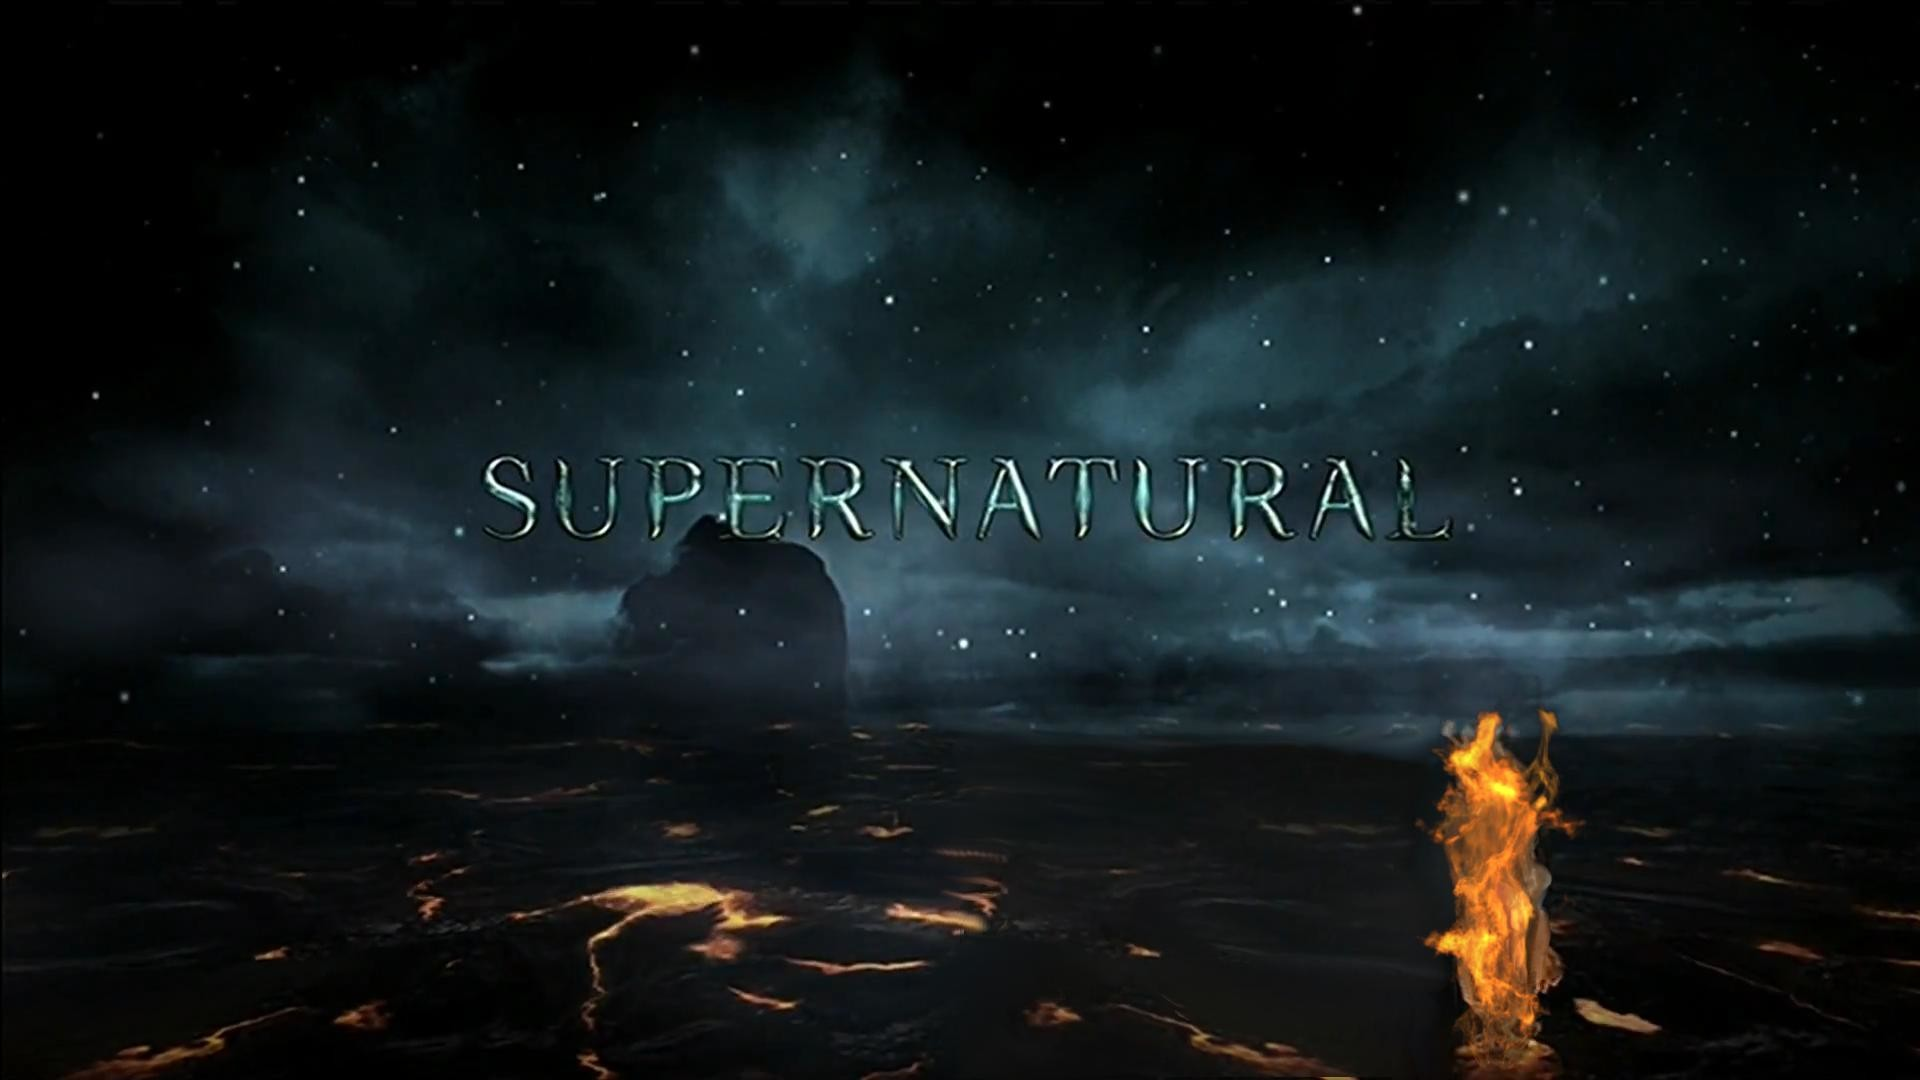 Supernatural Phone Wallpaper 58 images